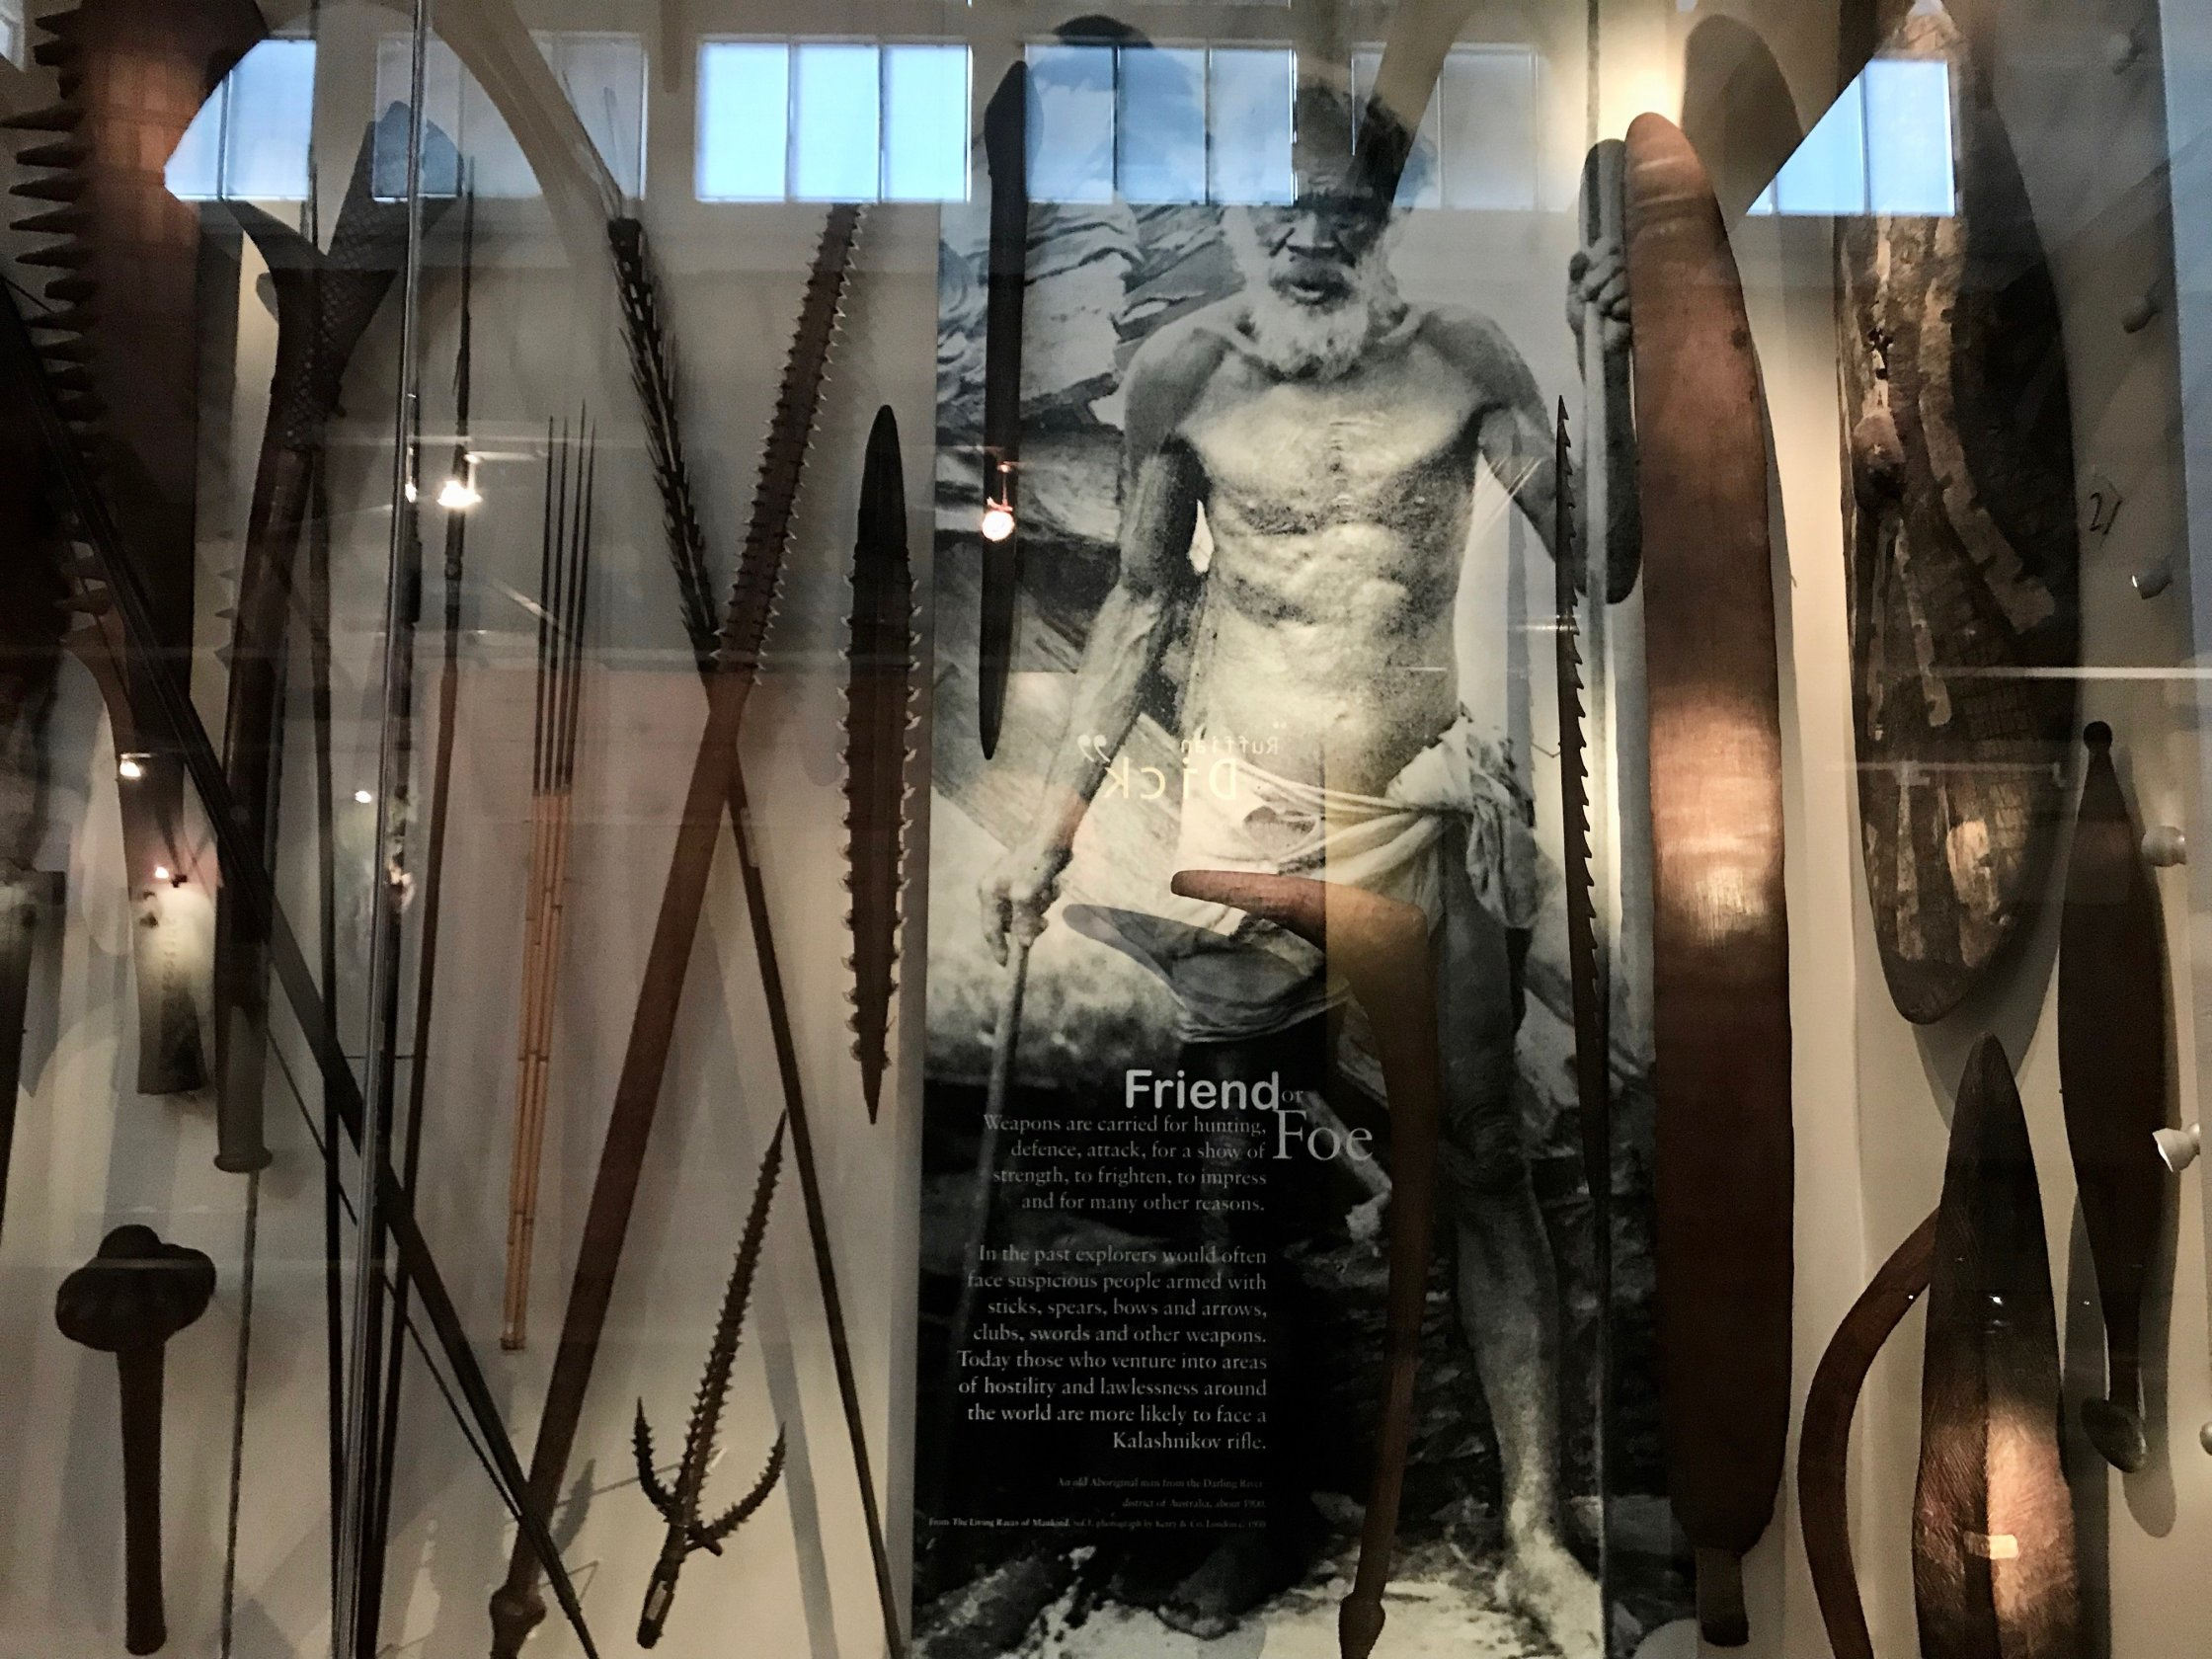 Museum vitrine showing a display of weapons from around the world with a photograph of a man entitled 'Friend or Foe'.